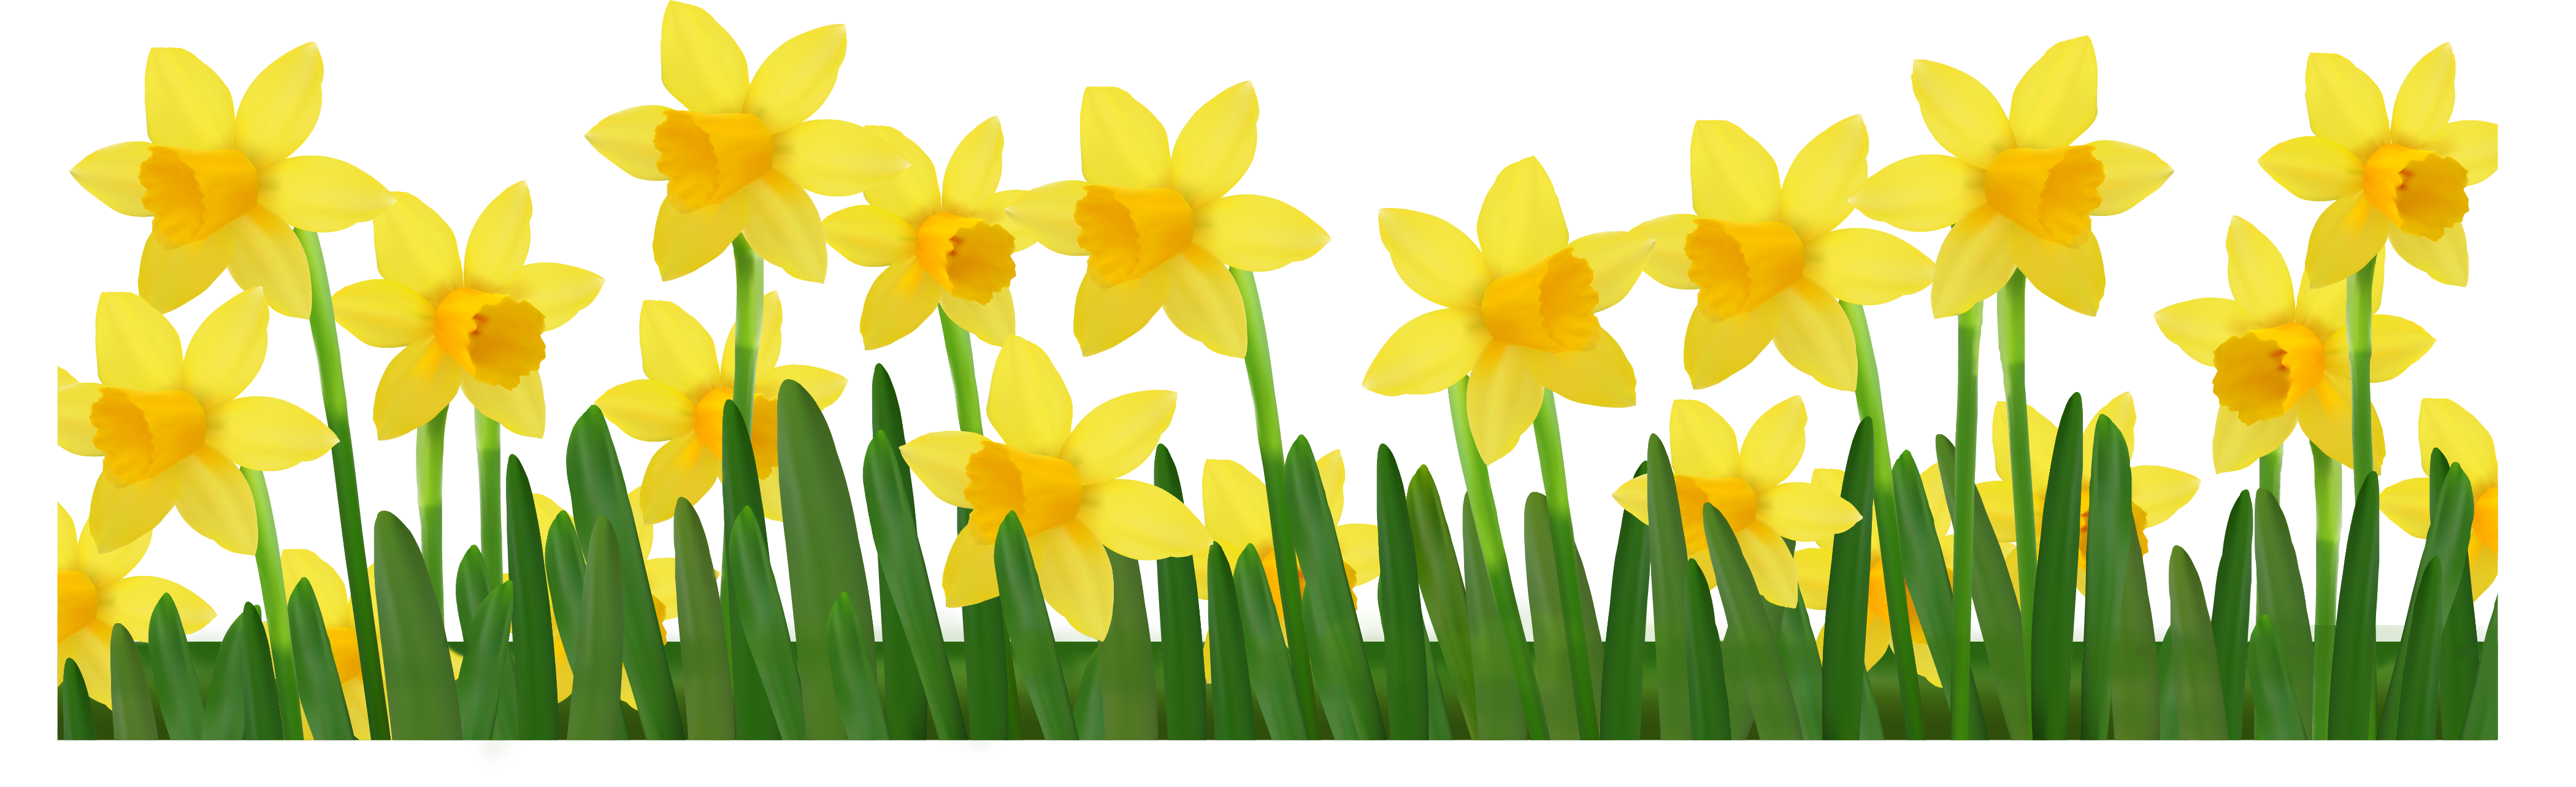 Clip Art Daffodil Clip Art daffodil clipart kid grass with daffodils png picture